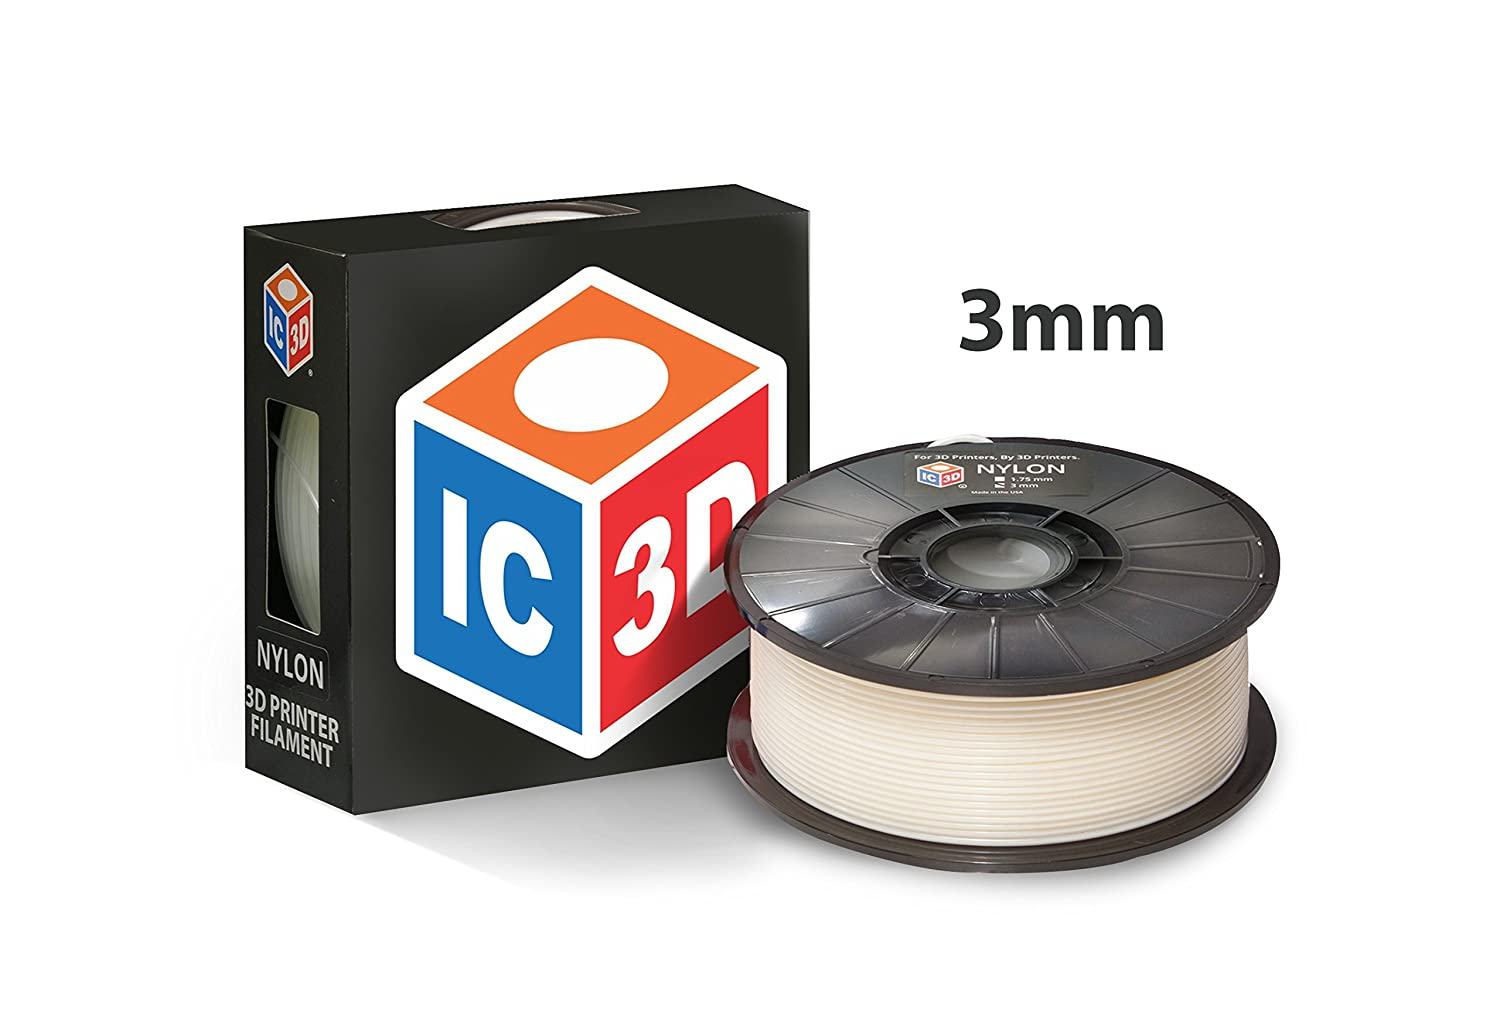 Amazon.com: ic3d filamento 3 mm Impresora 3d filamento de ...